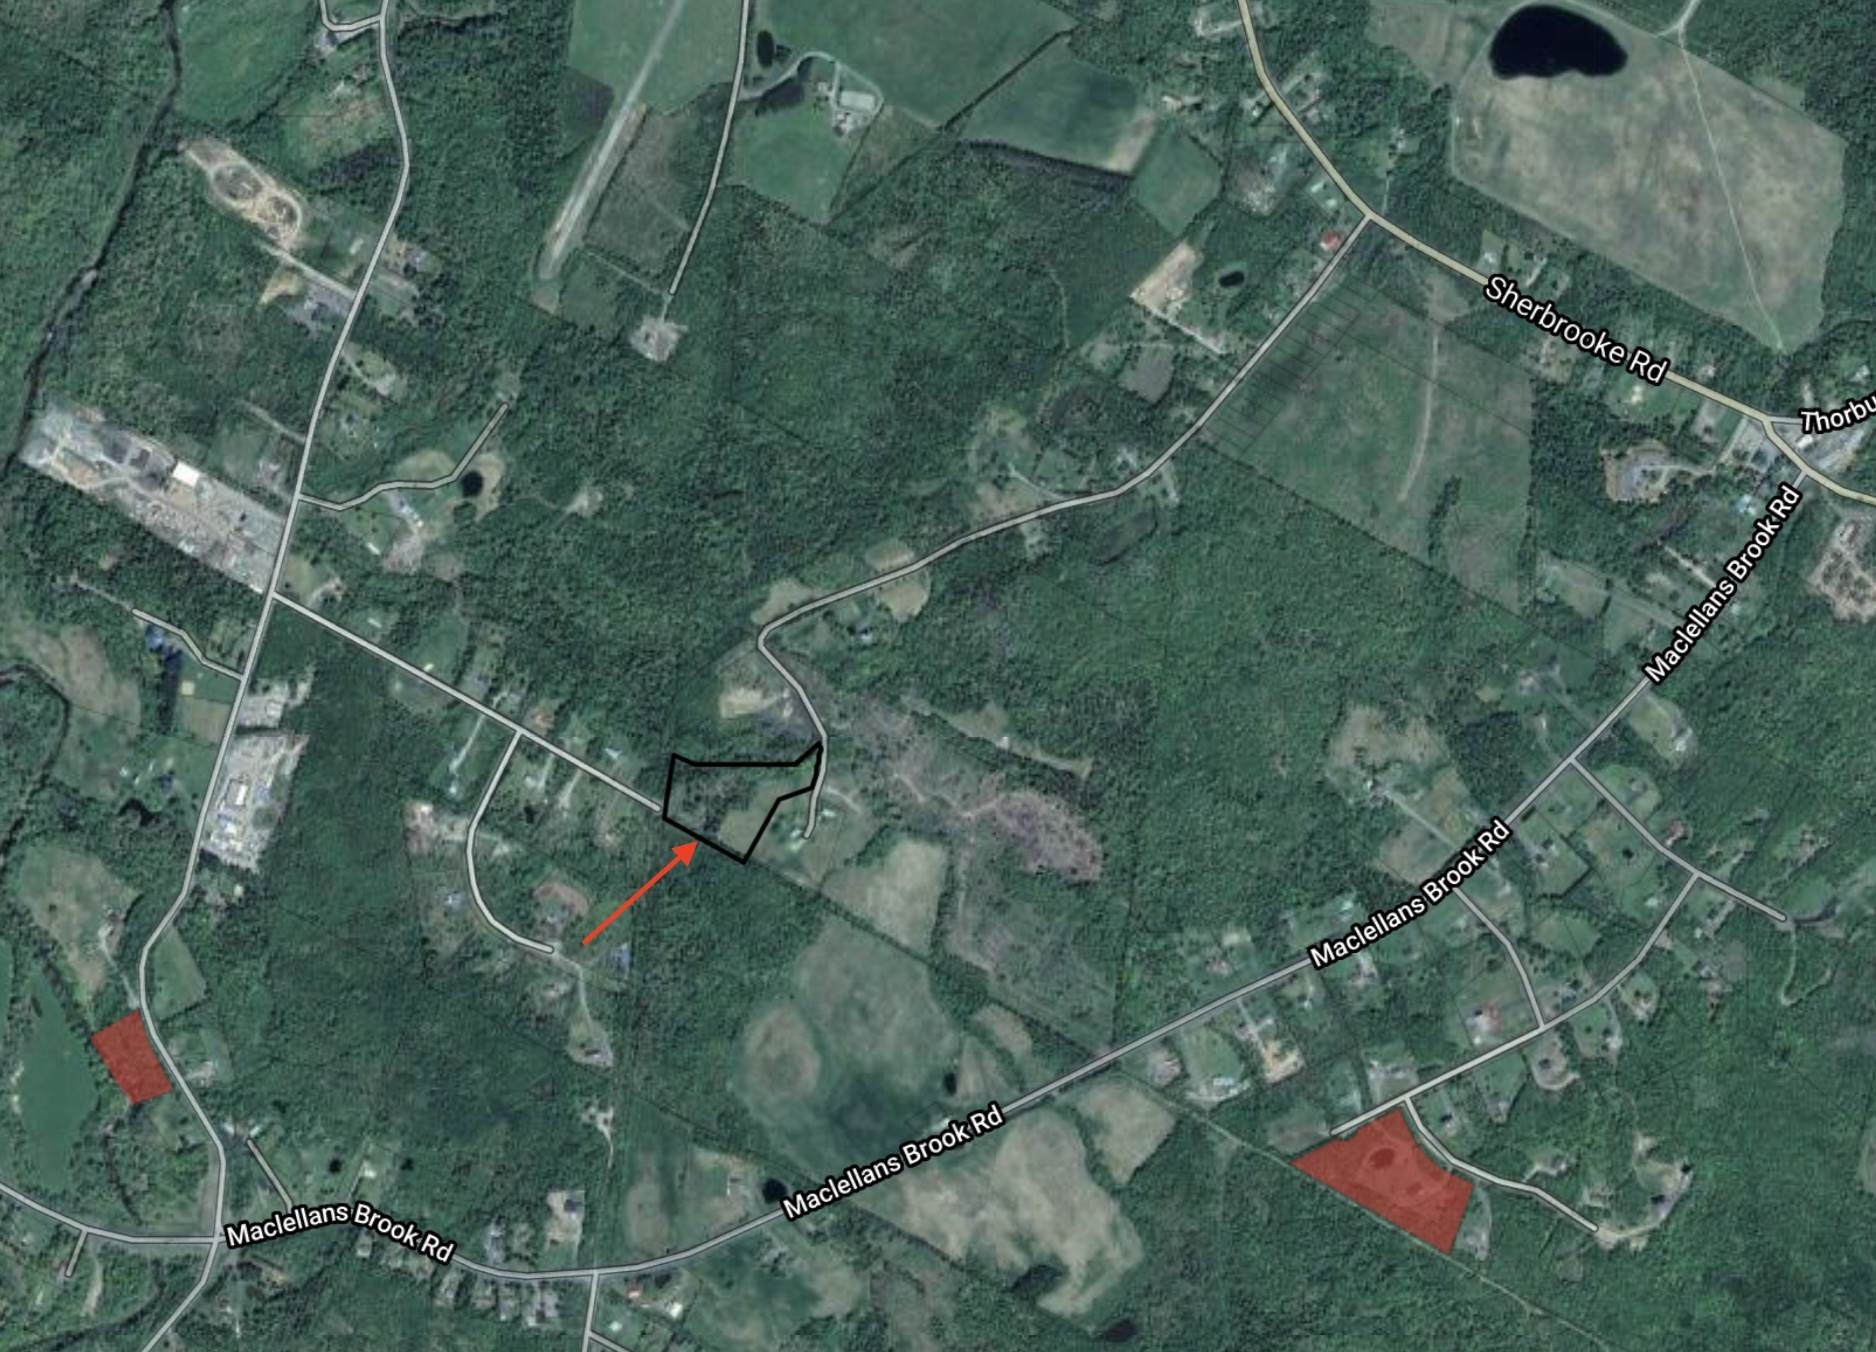 Main Photo: Lot 2 Reeves Road in Thorburn: 108-Rural Pictou County Vacant Land for sale (Northern Region)  : MLS®# 202101028